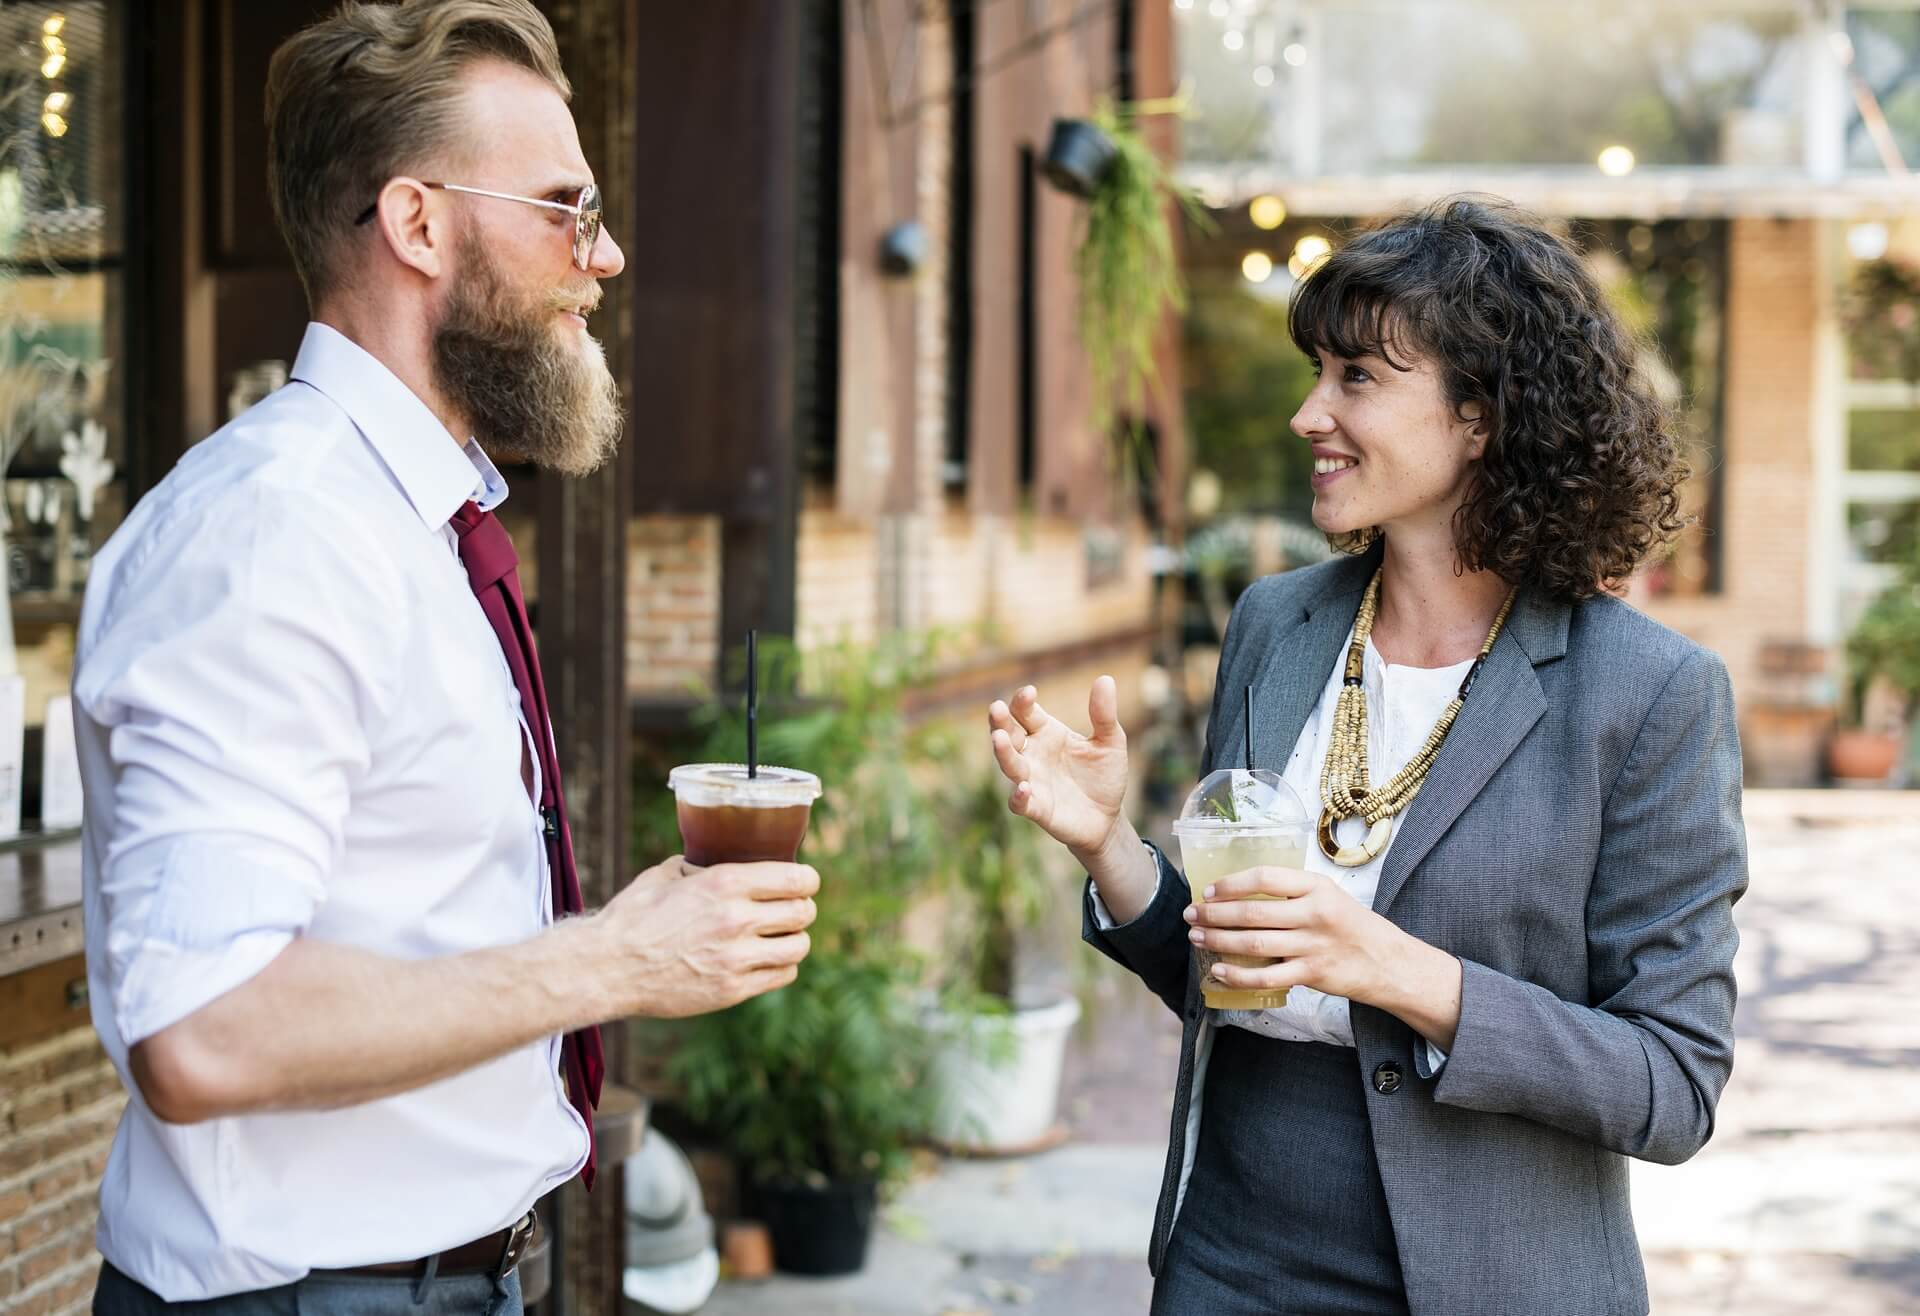 This image displays a man and a woman doing networking and portrays relevance to strategic communications for nonprofits